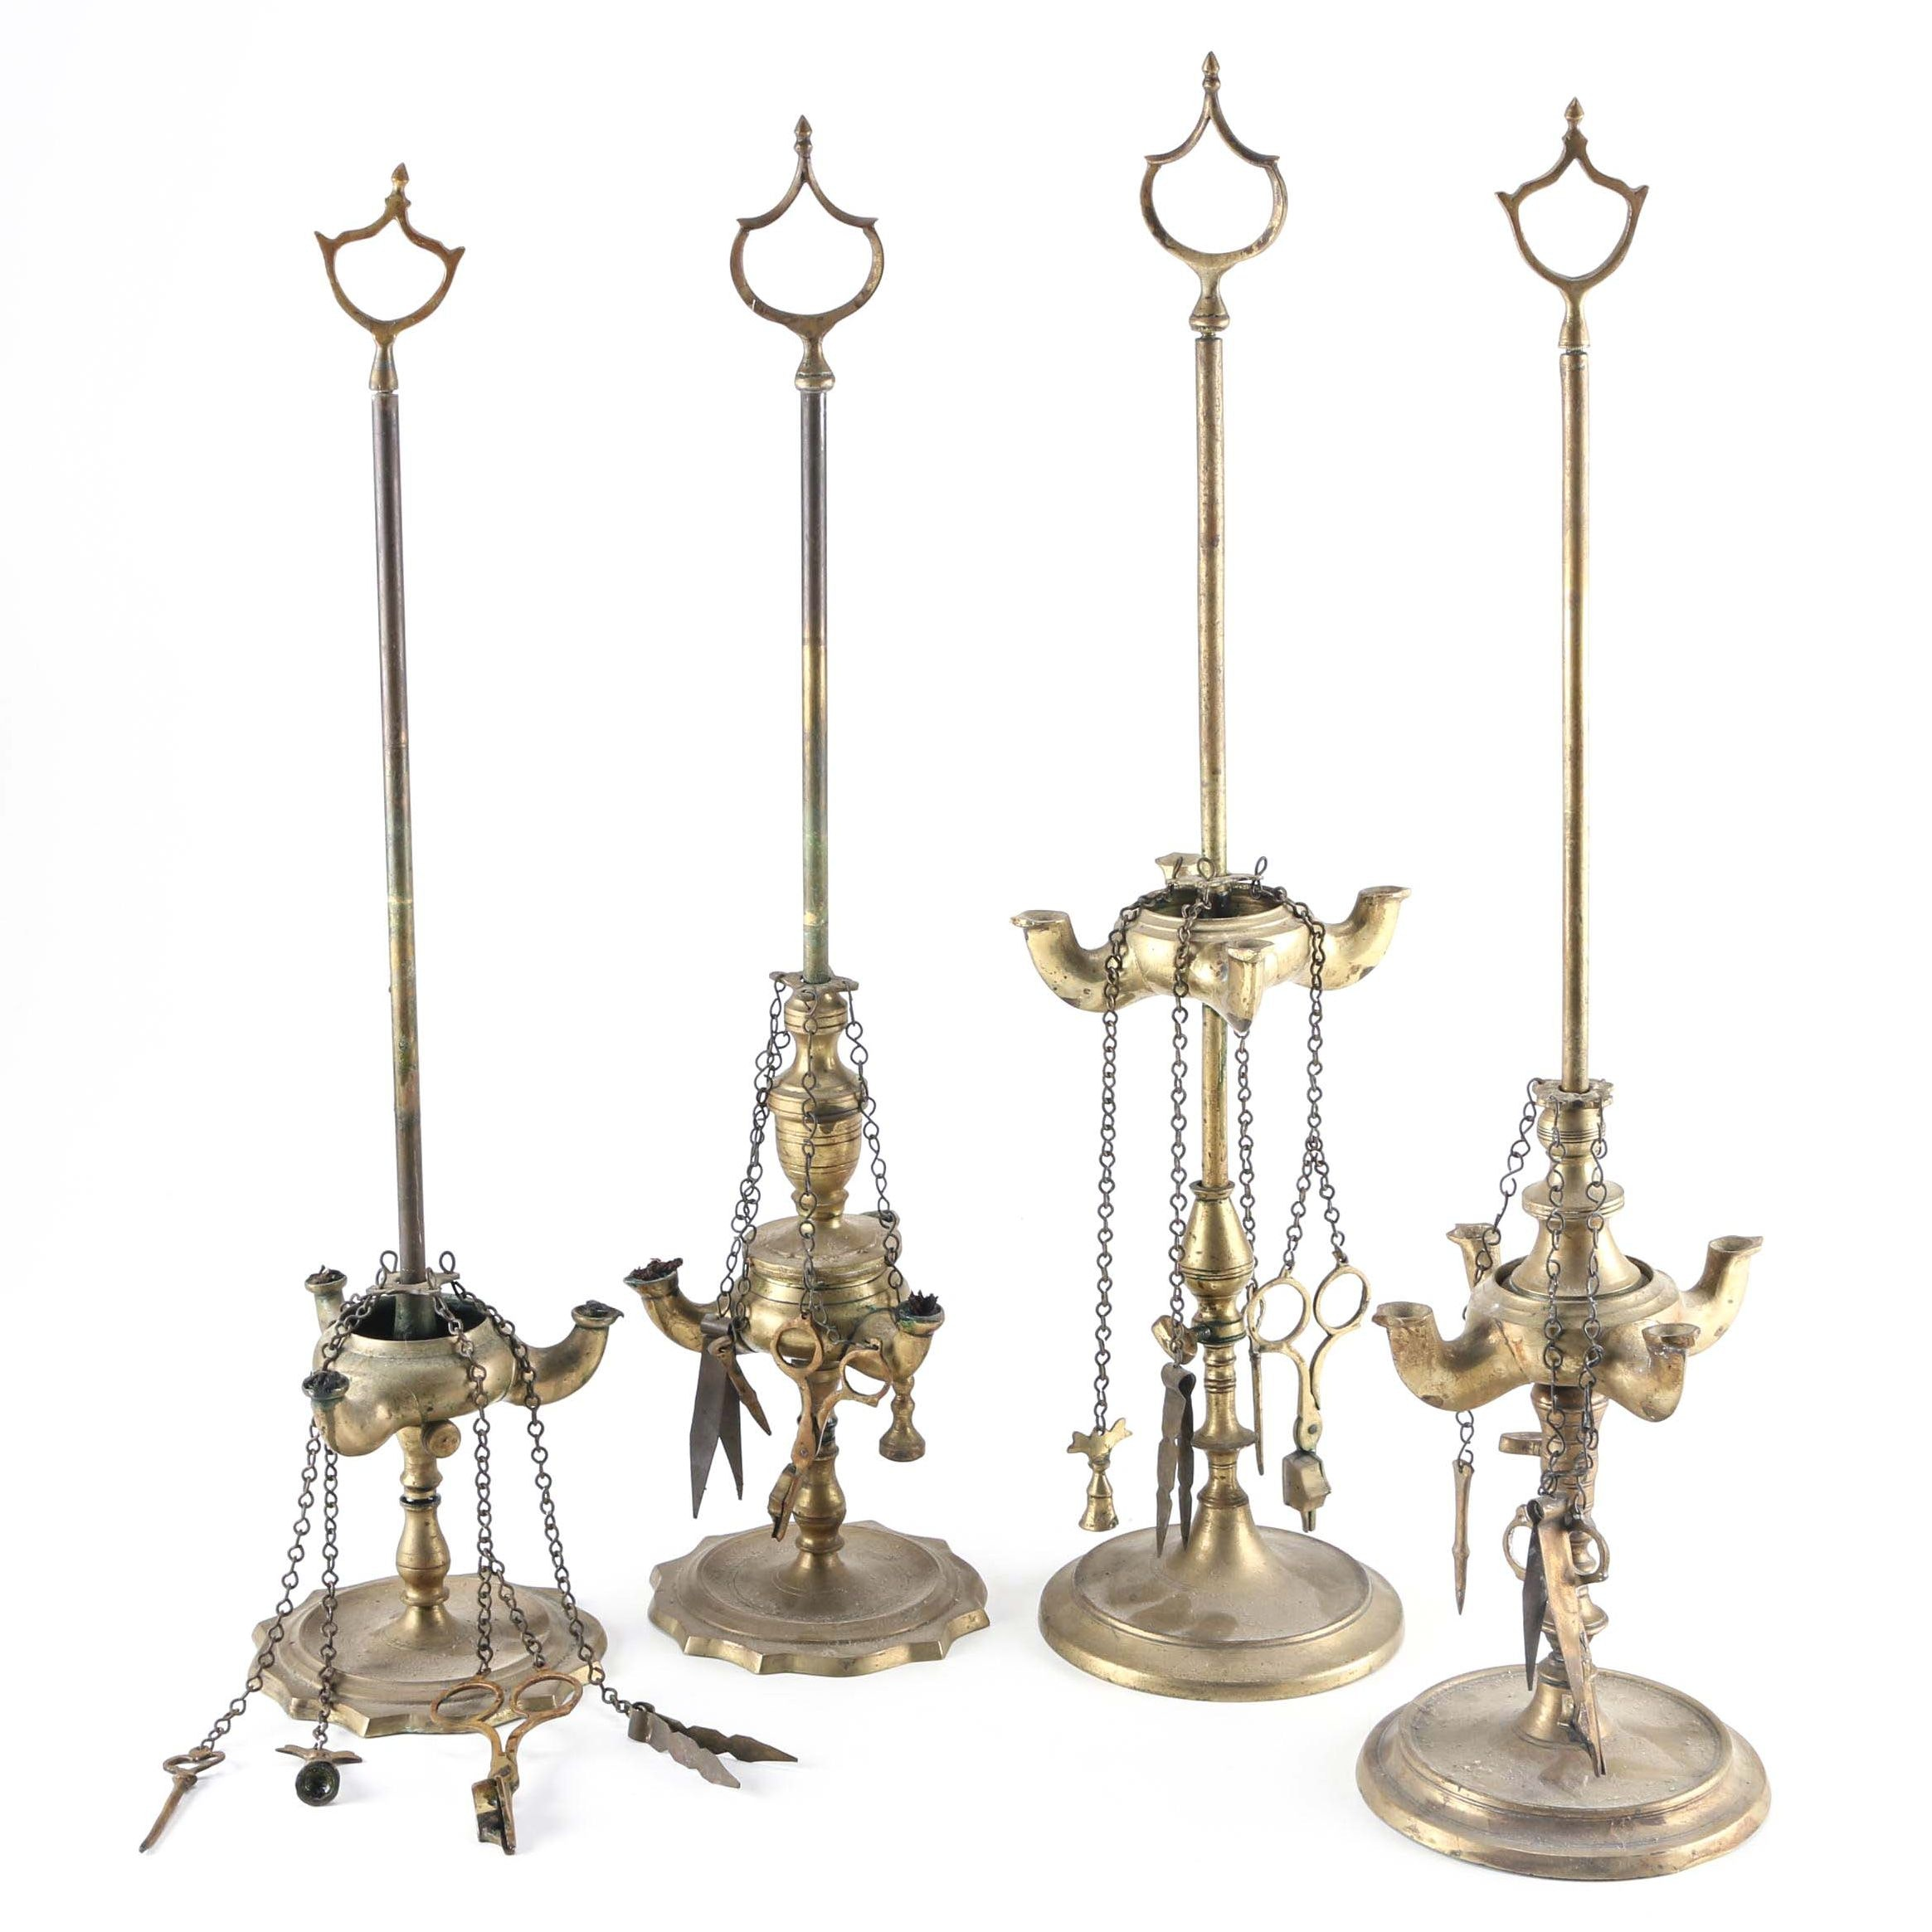 Antique Brass Whale Oil Lamps ...